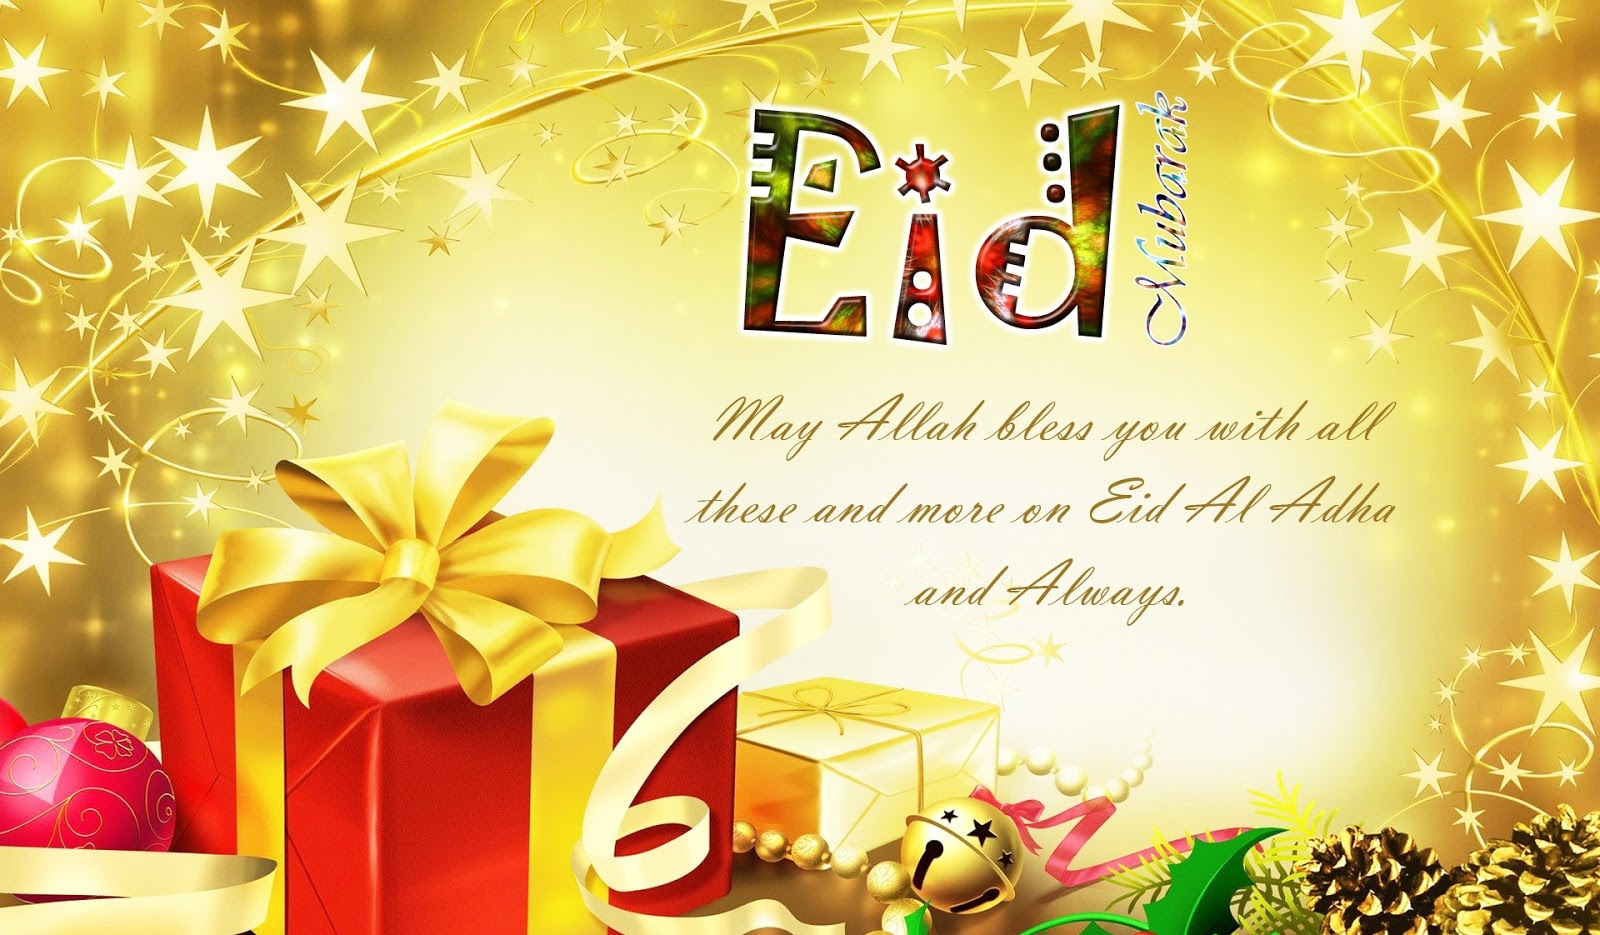 Eid Ul Adha Quotes Sms Messages And Wishes Bakrid Greetings